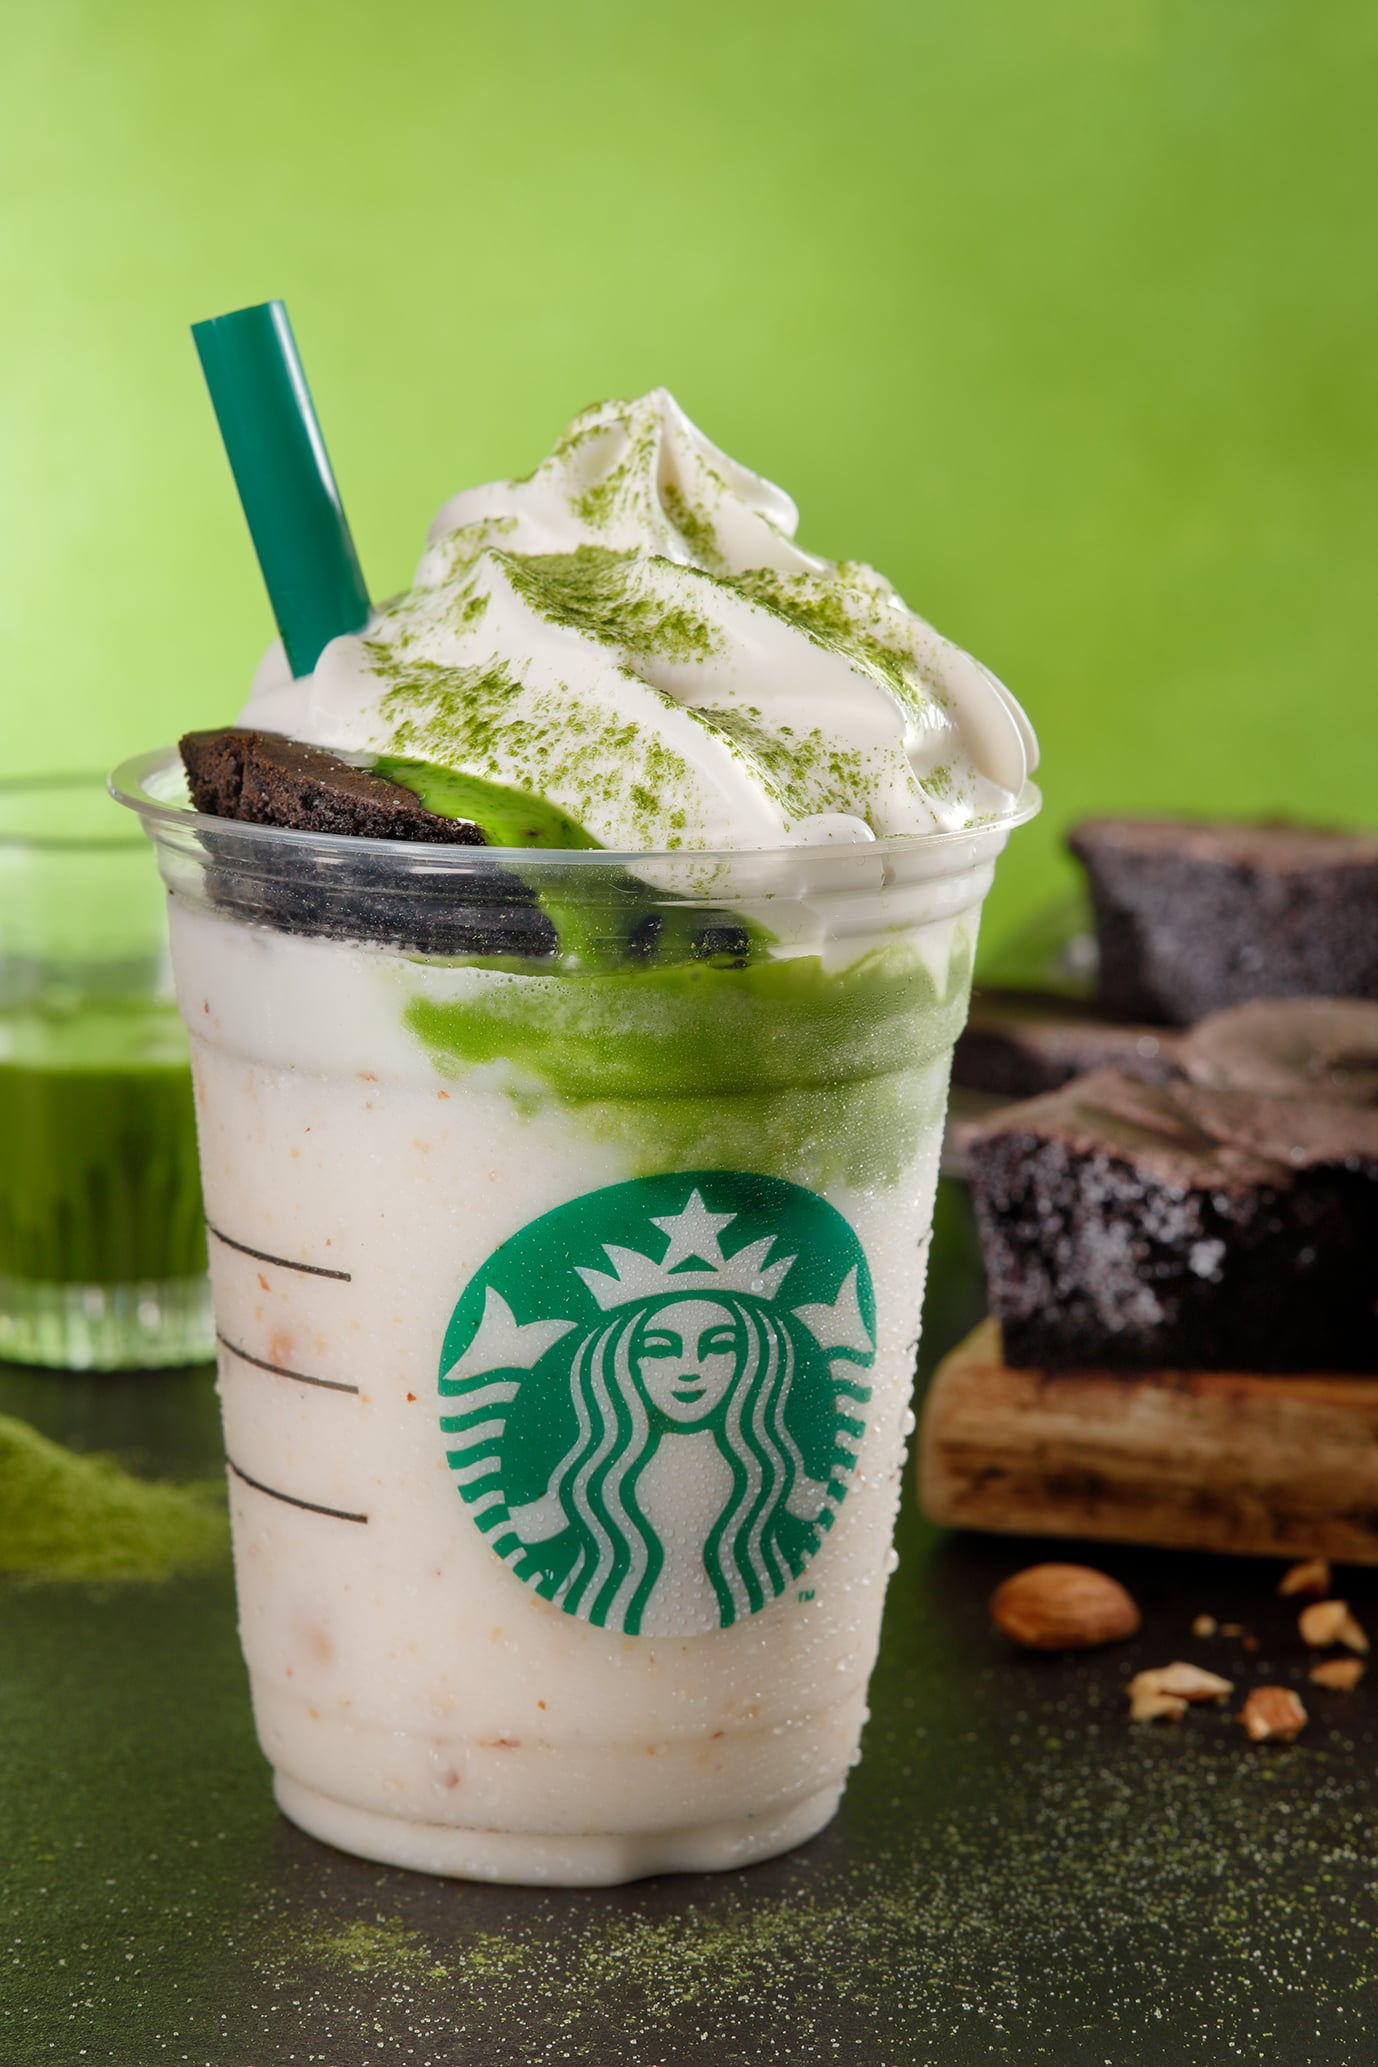 Starbucks's New Chocolate Cake Topped Frappuccinos Will Make You Melt